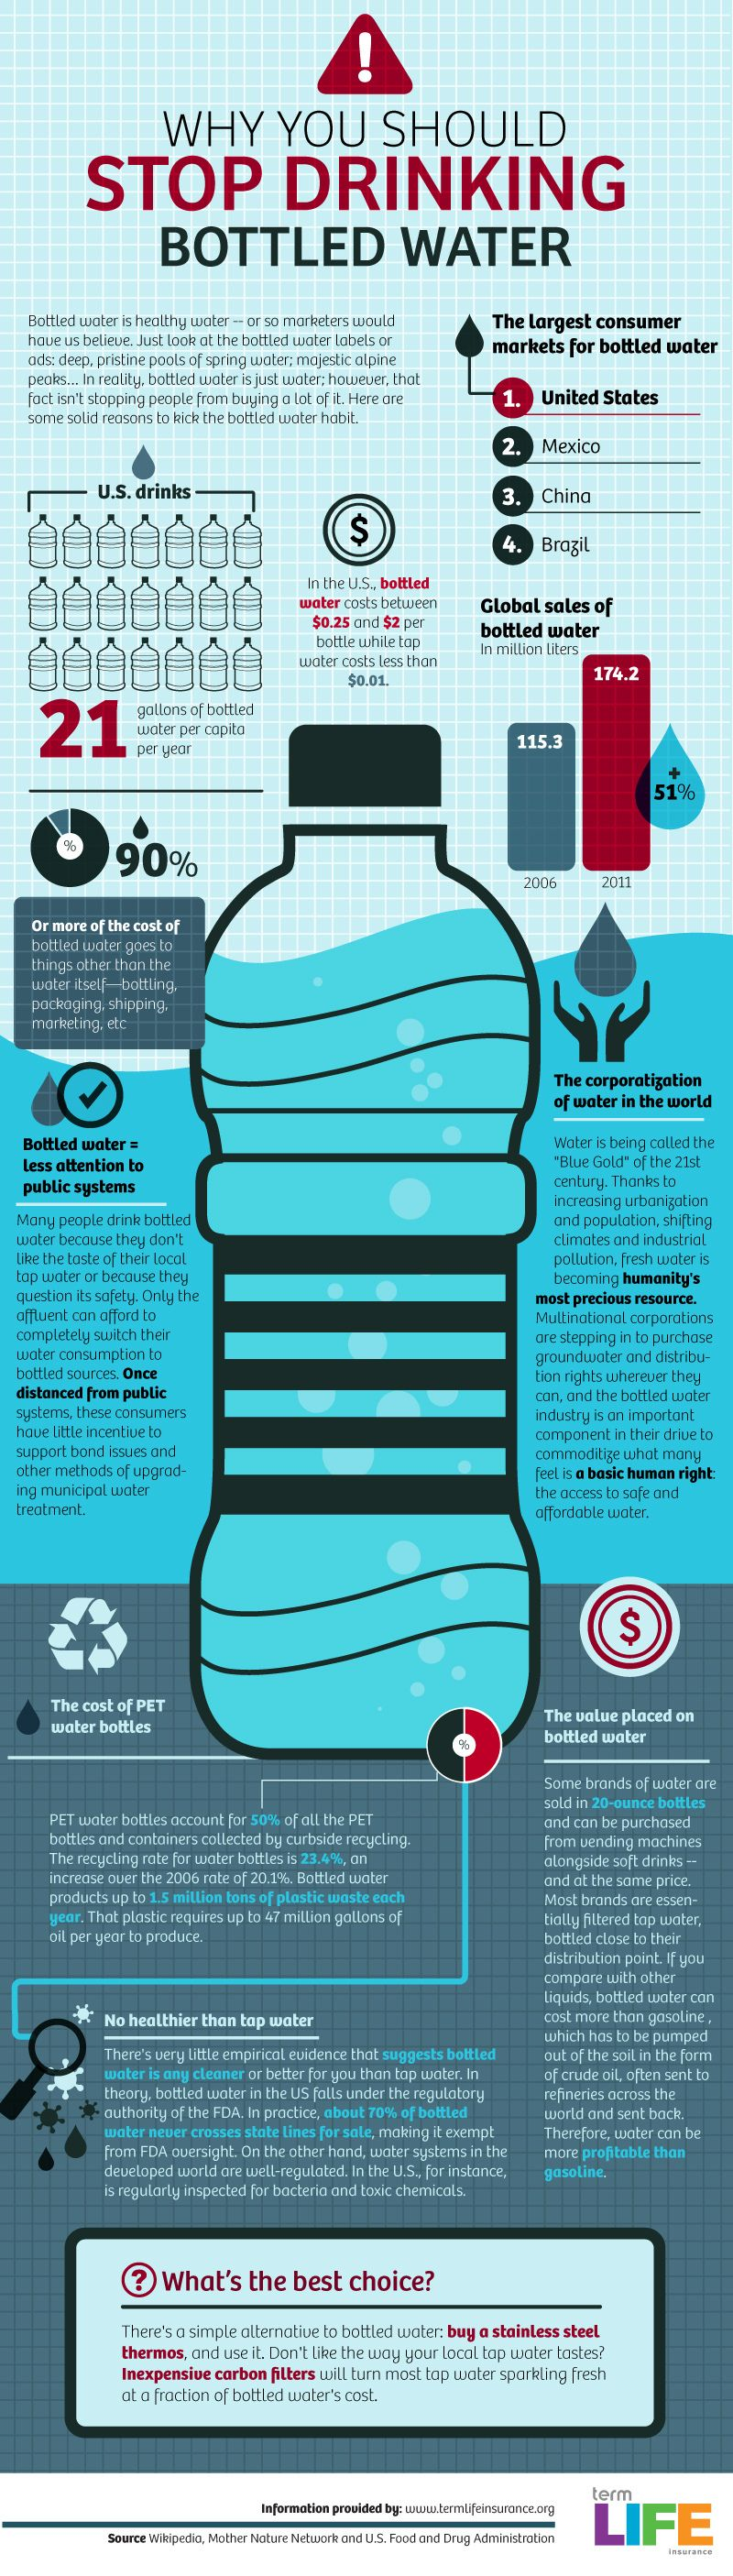 Why you should think again about bottled water